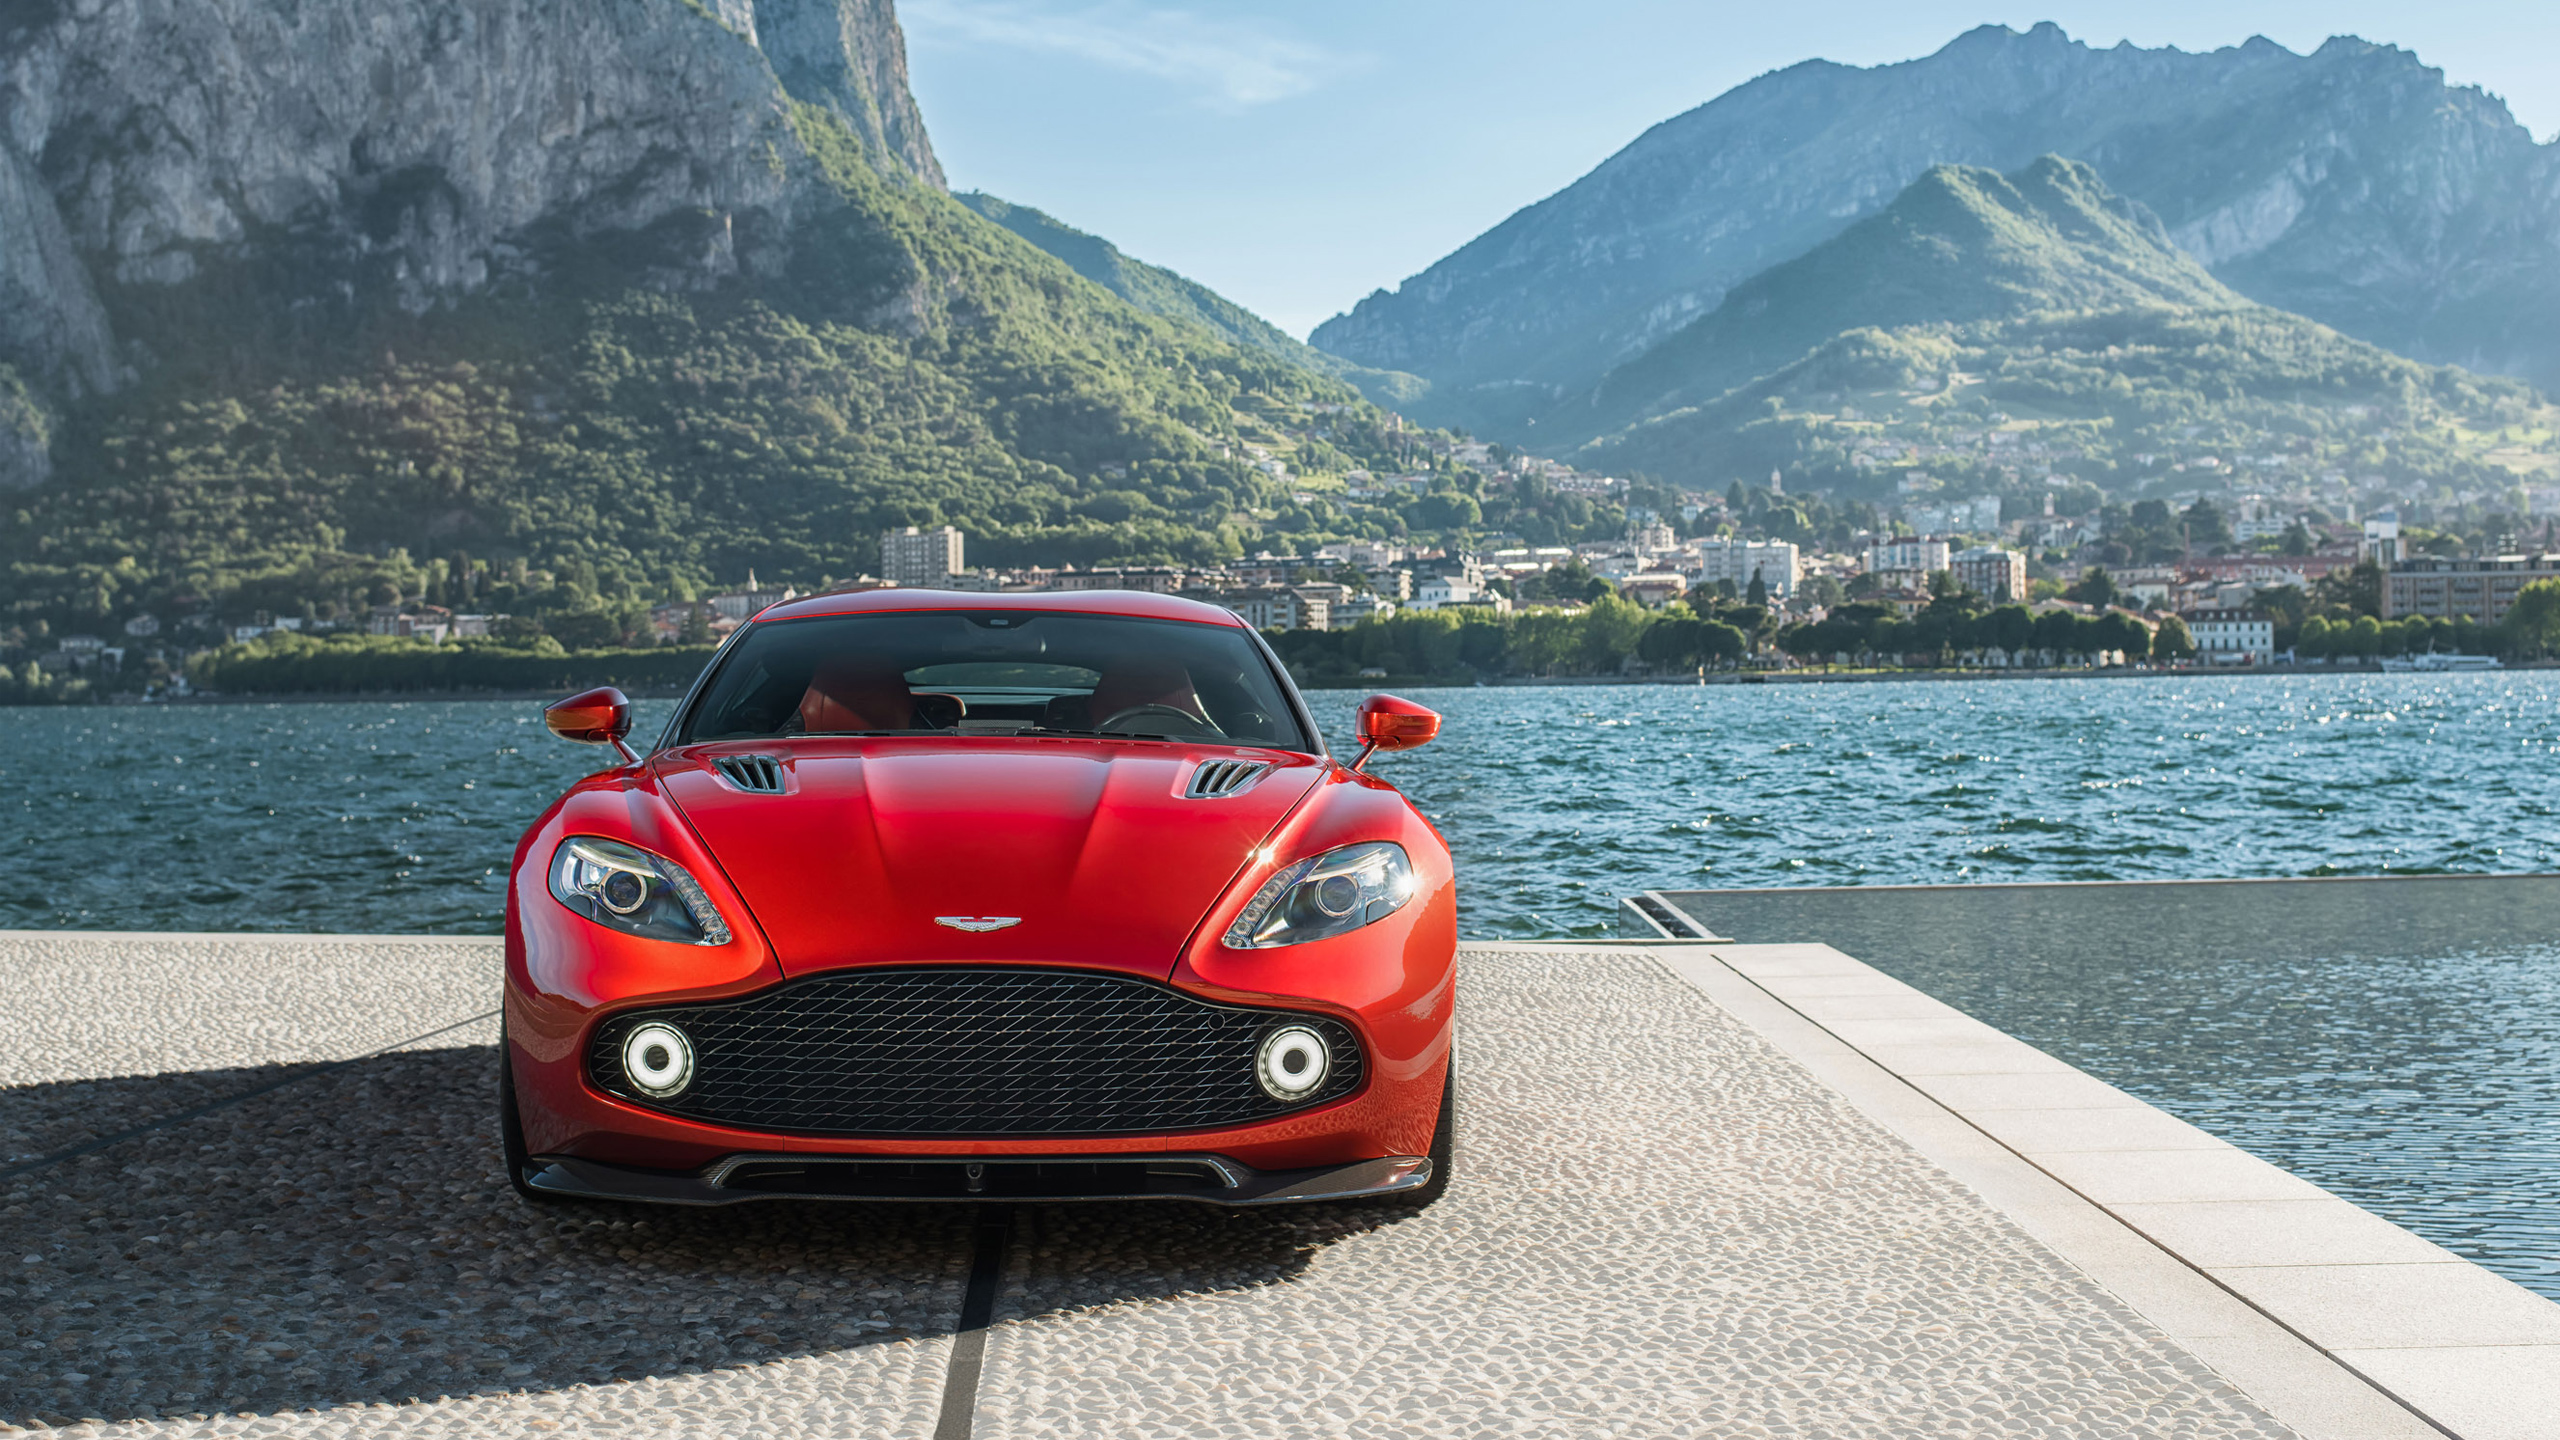 2017 Aston Martin Vanquish Zagato Wallpaper HD Car Wallpapers 2560x1440